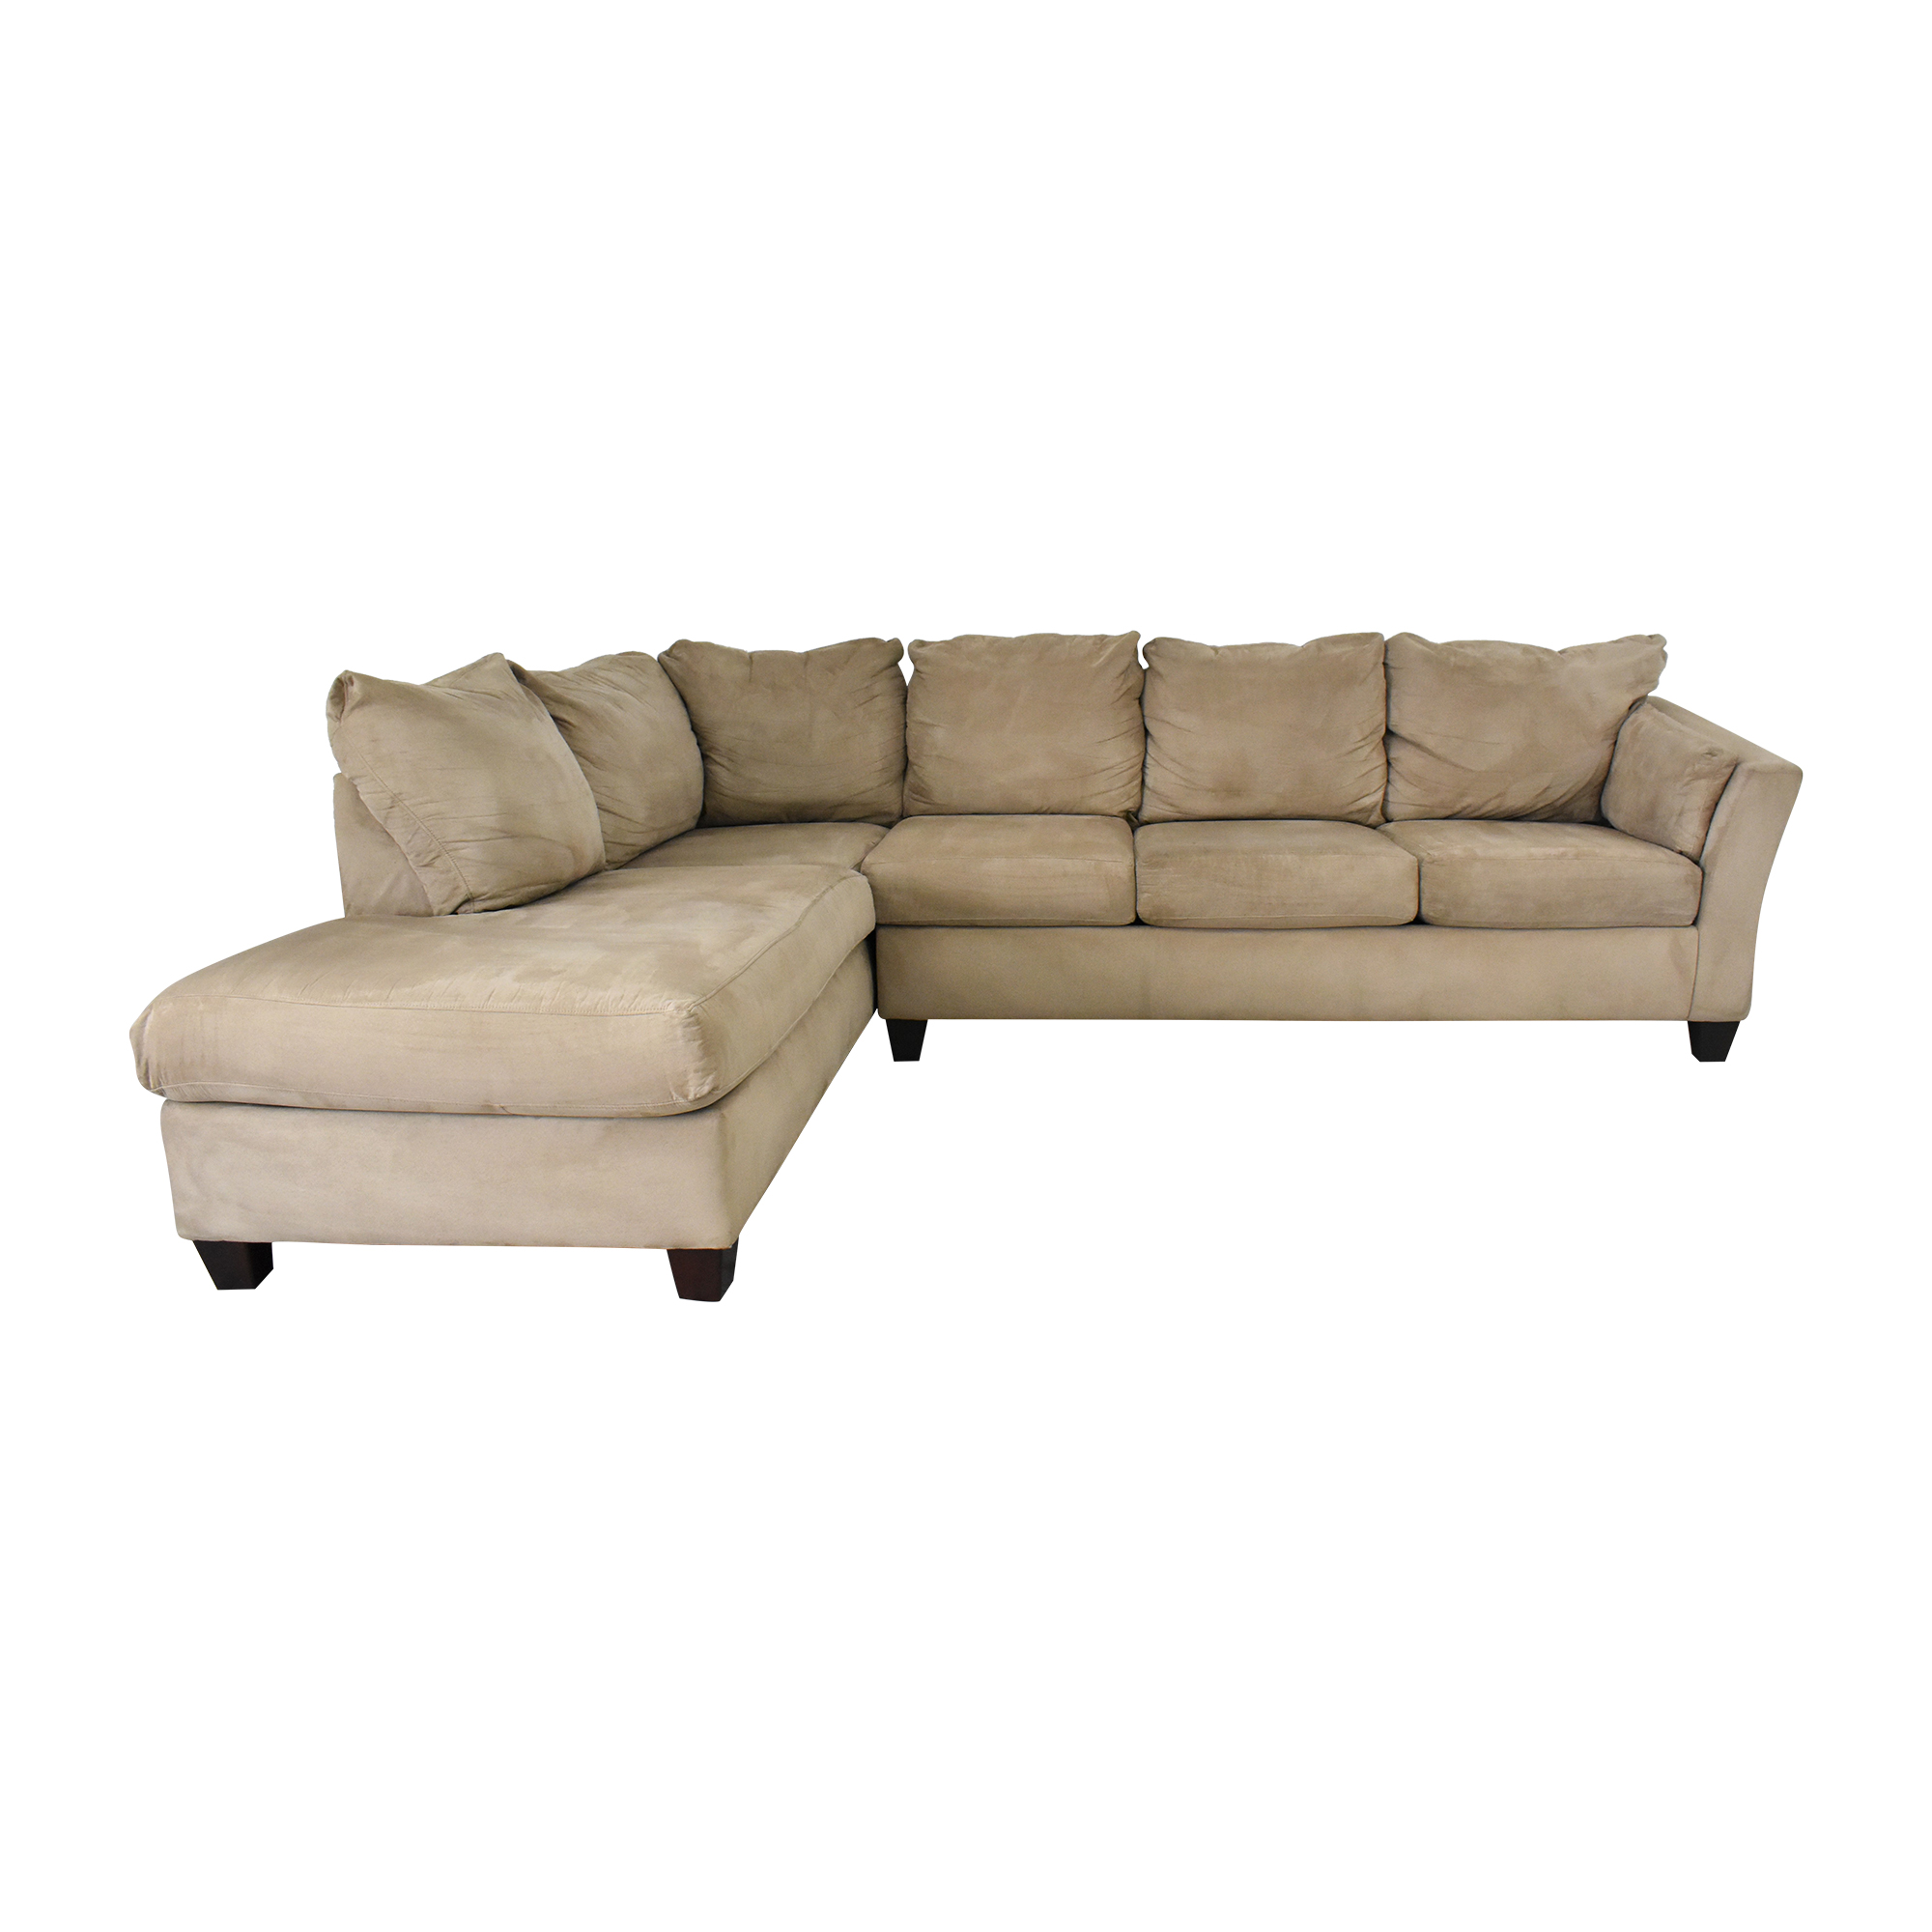 buy Klaussner Sectional Sofa Klaussner Sofas